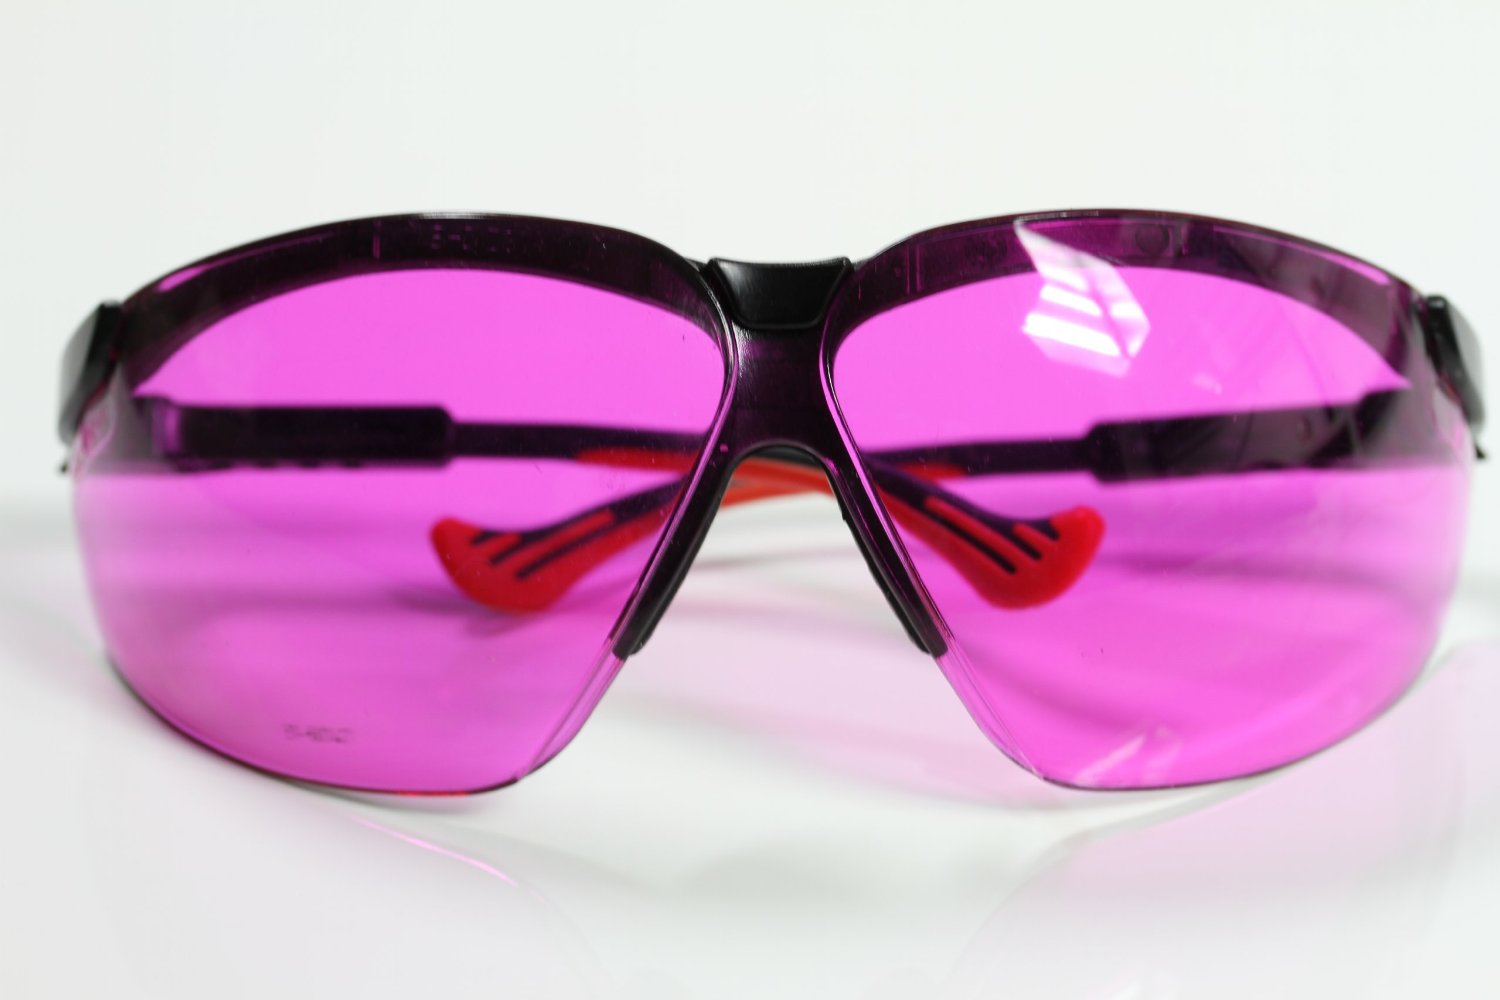 Oxy-Iso Colorblindness Correction Glasses, Pink lenses